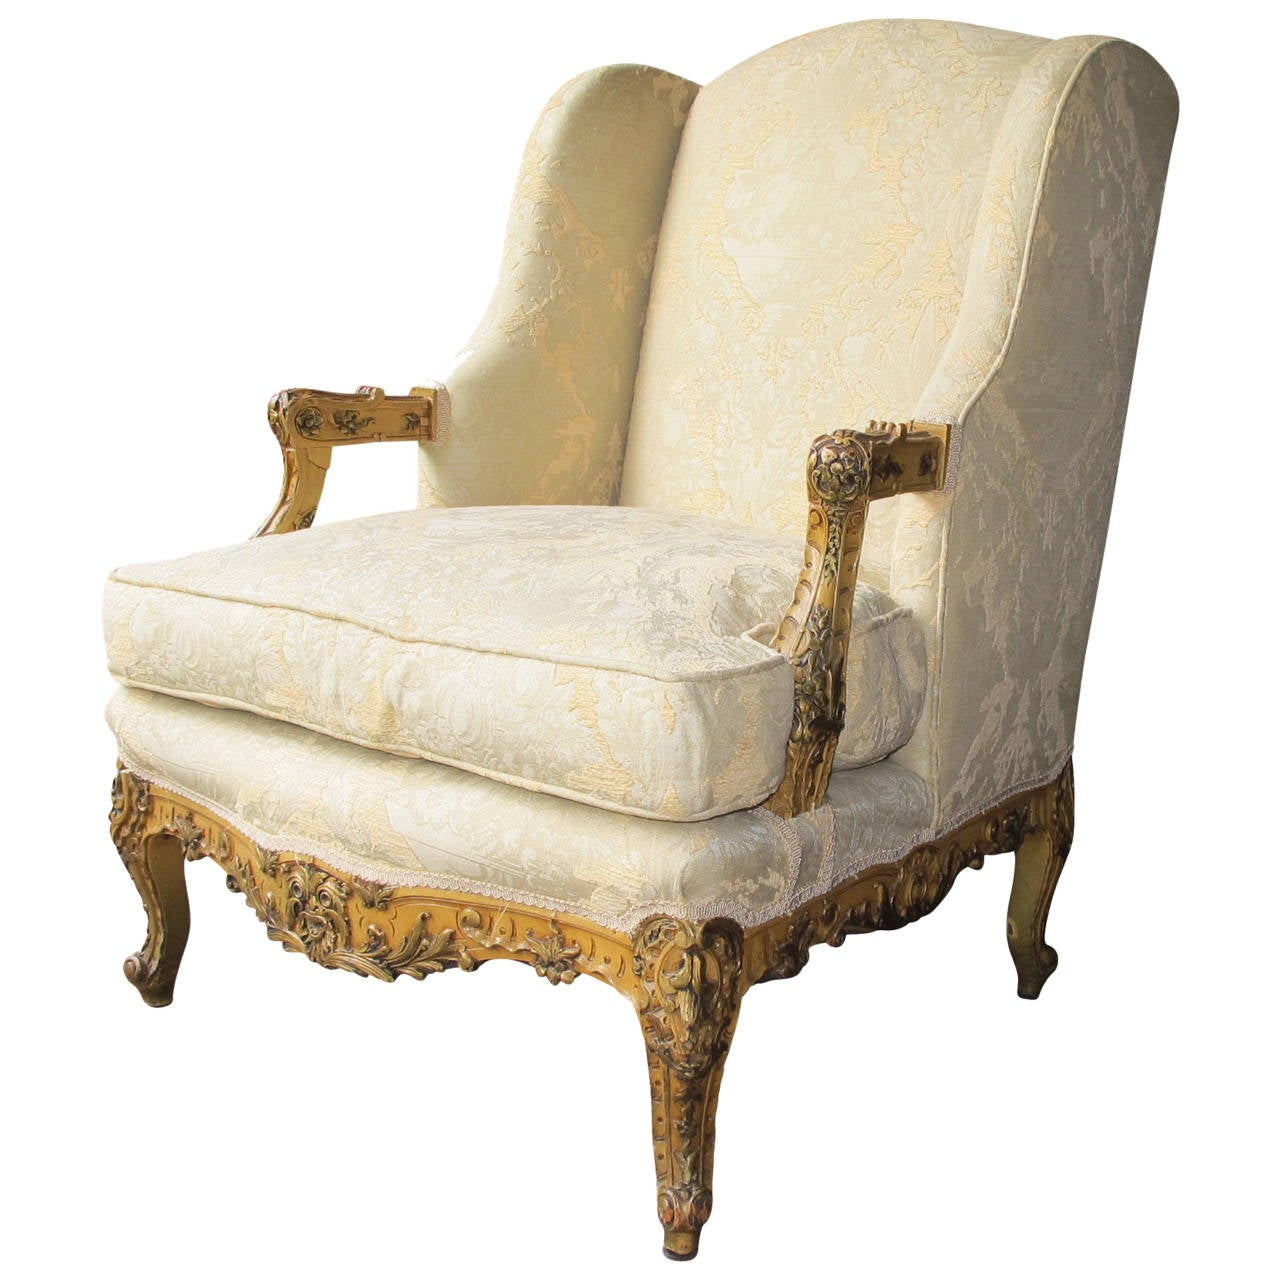 Louis The 14th Furniture Beautiful Louis Xiv Style Bergere Chair At 1stdibs